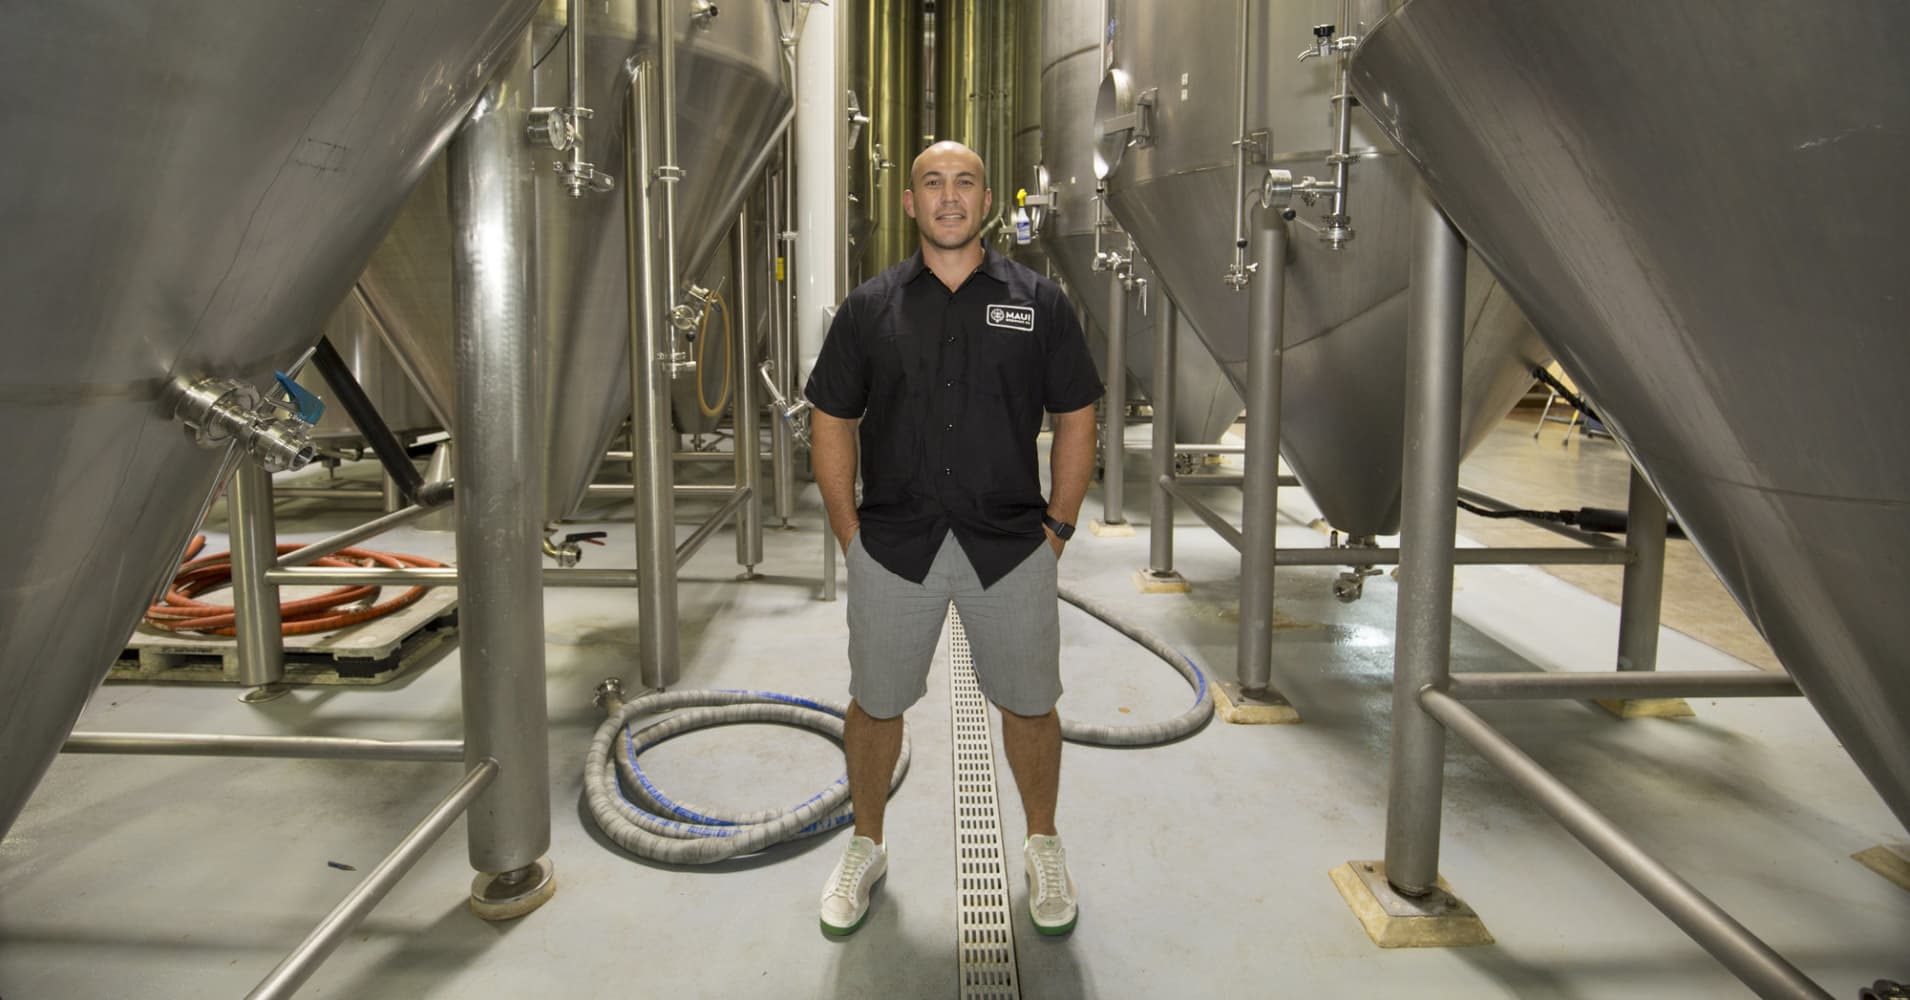 Garrett Marrero, co-founder of Maui Brewing Company